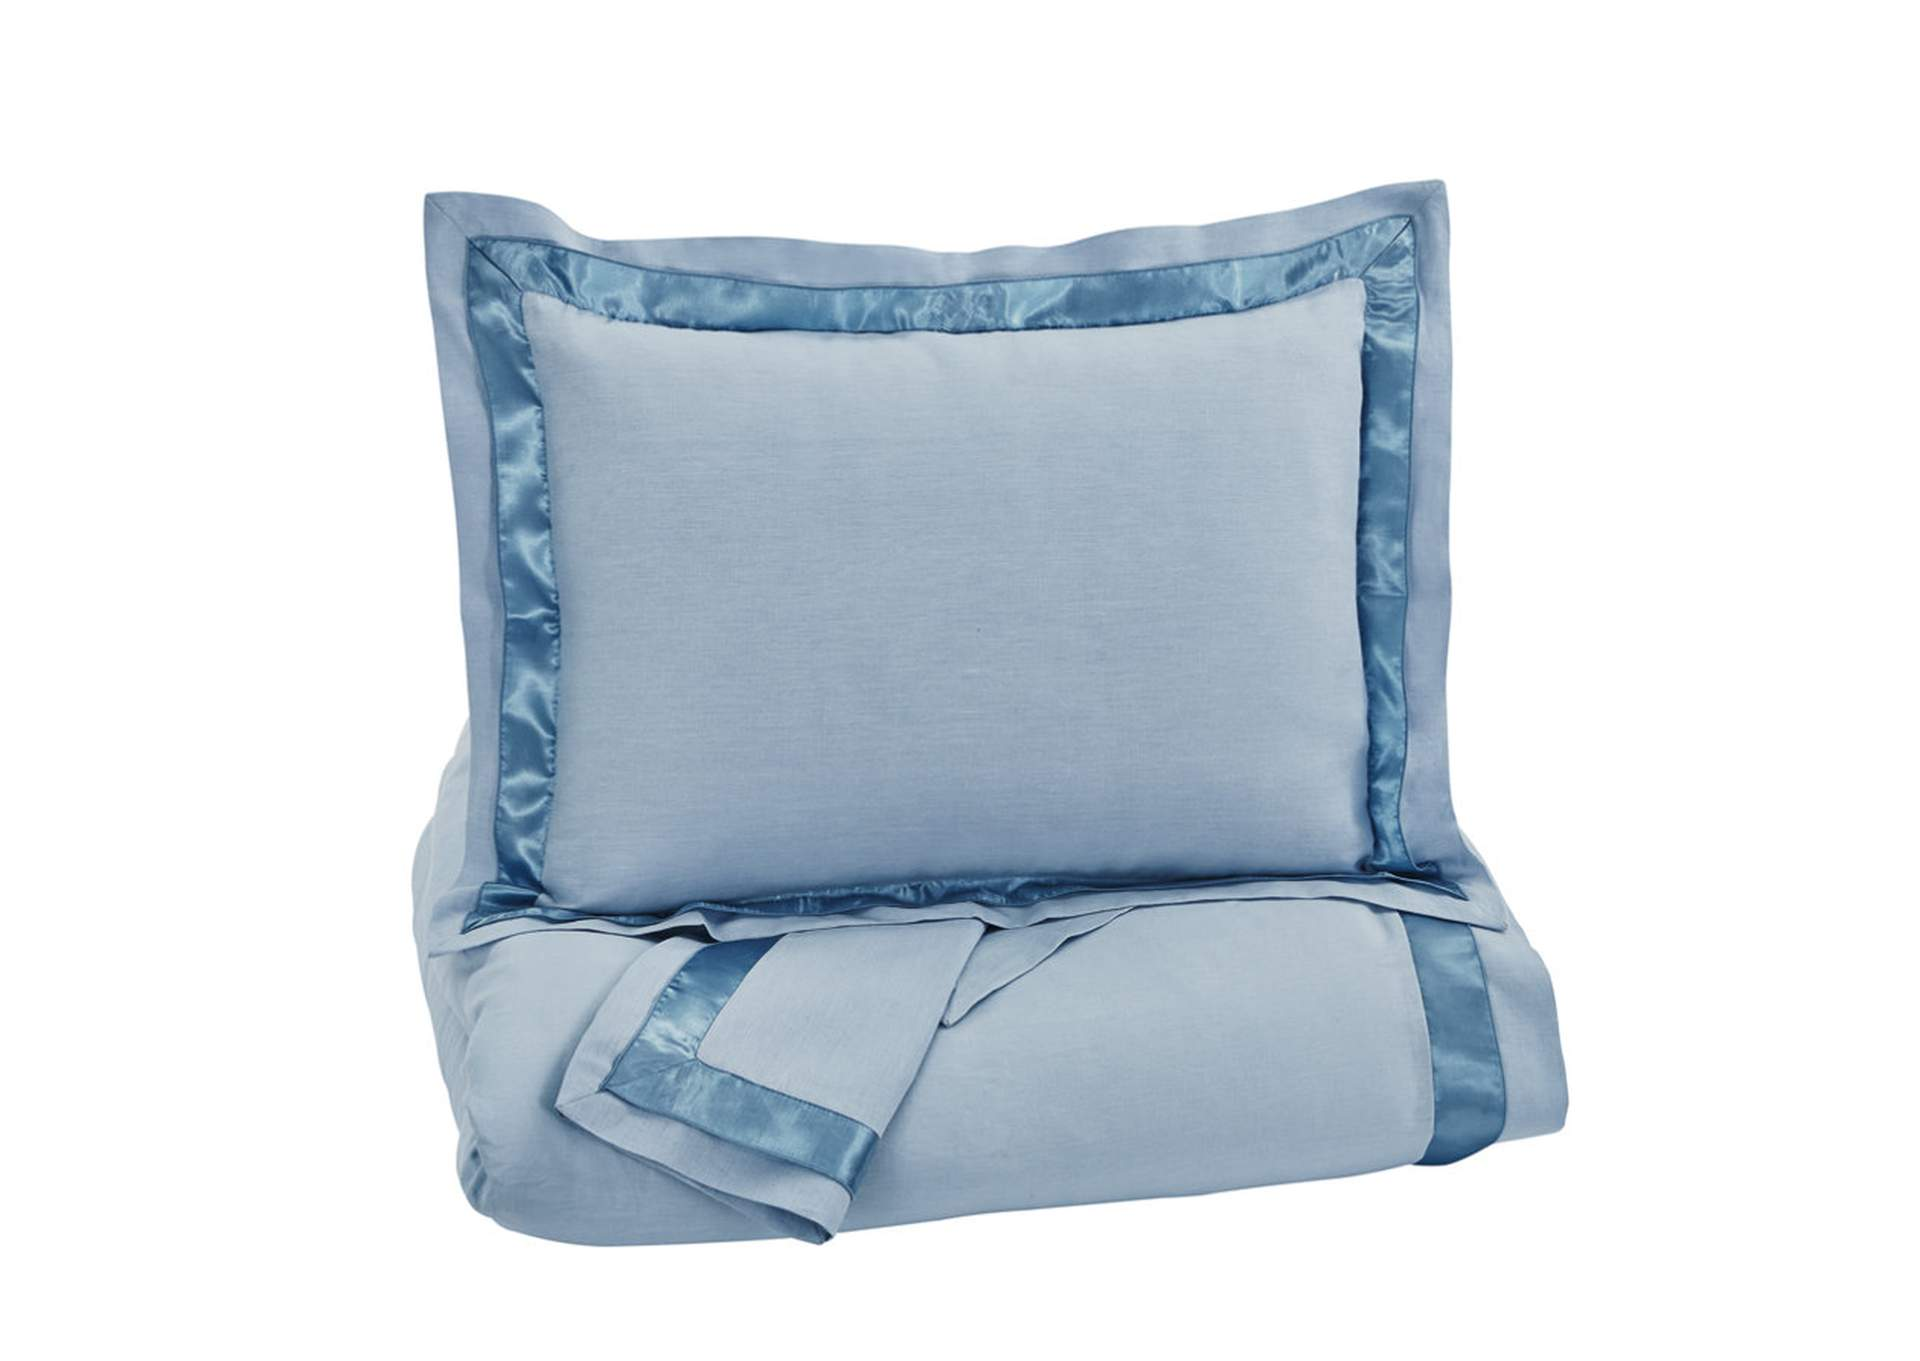 Farday Soft Blue Queen Duvet Cover Set,Signature Design By Ashley